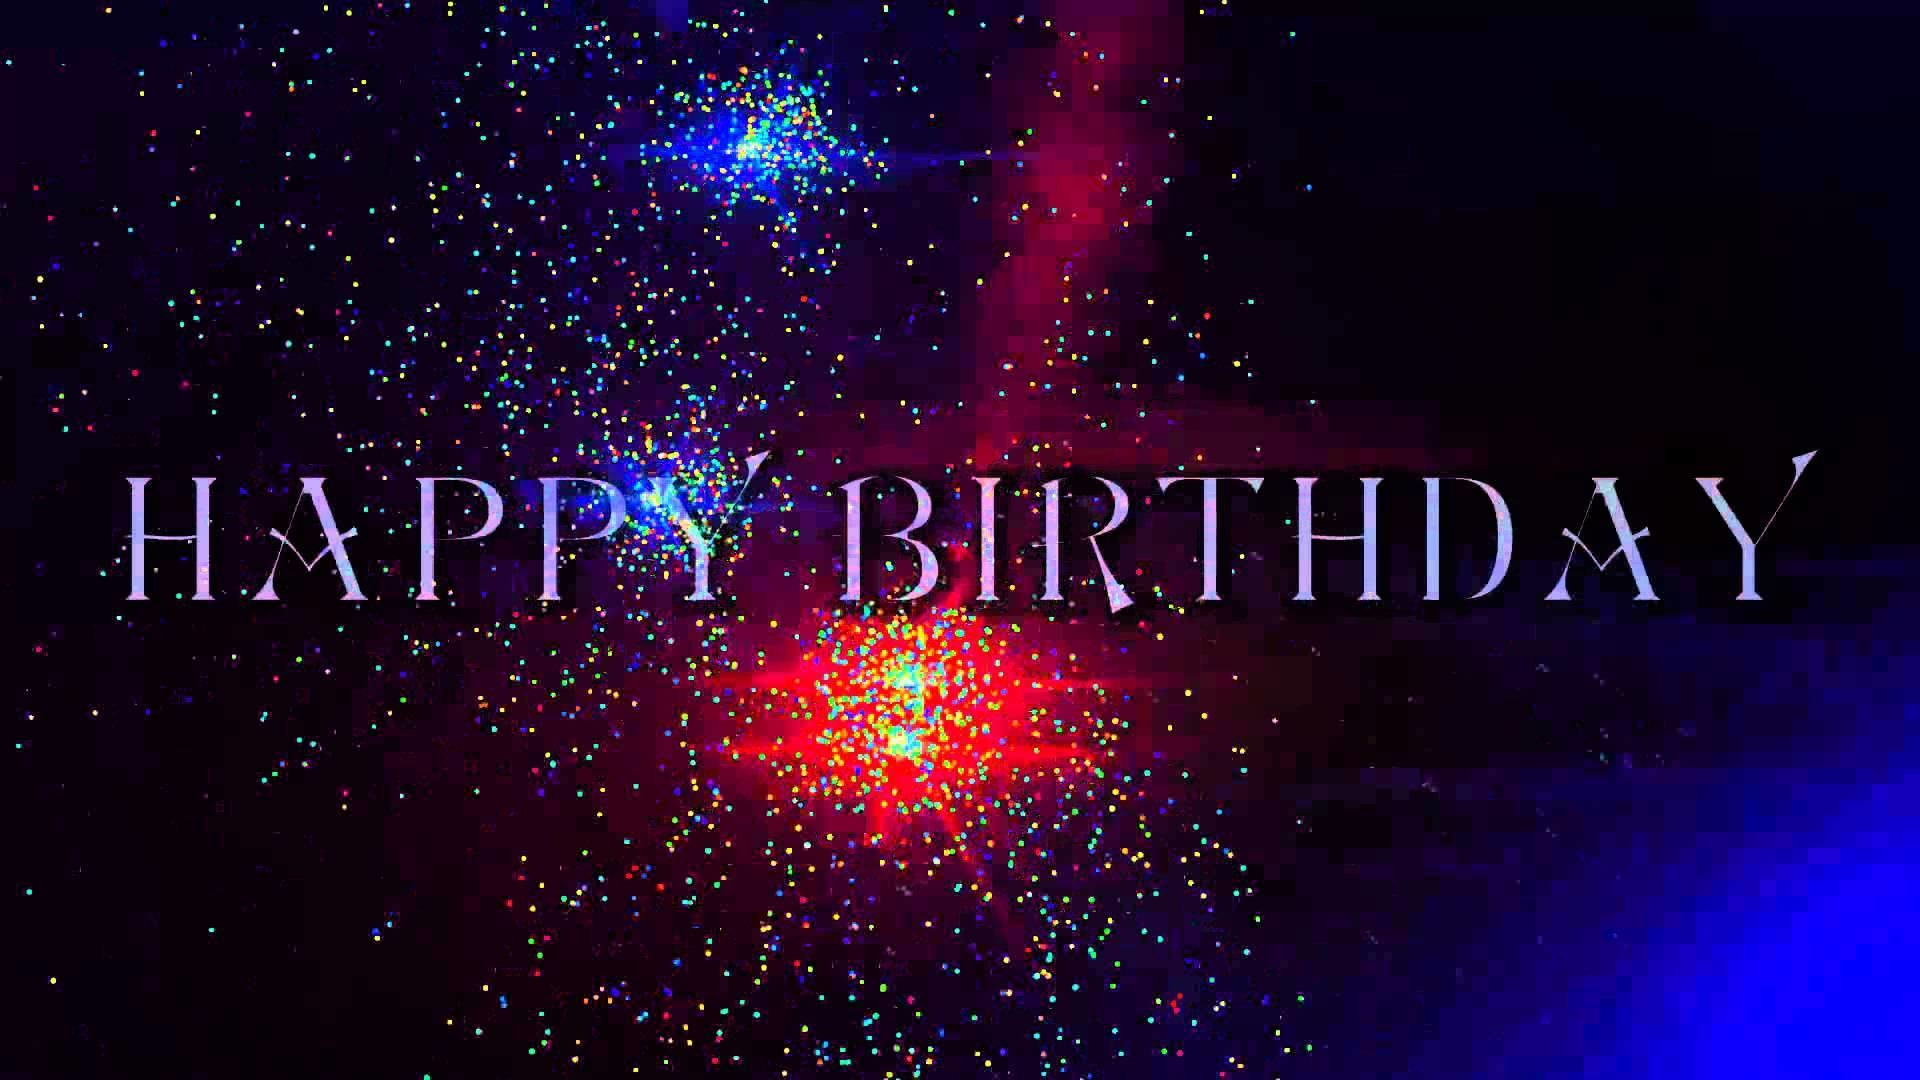 Free Birthday Images Download Free Clip Art Free Clip Art on